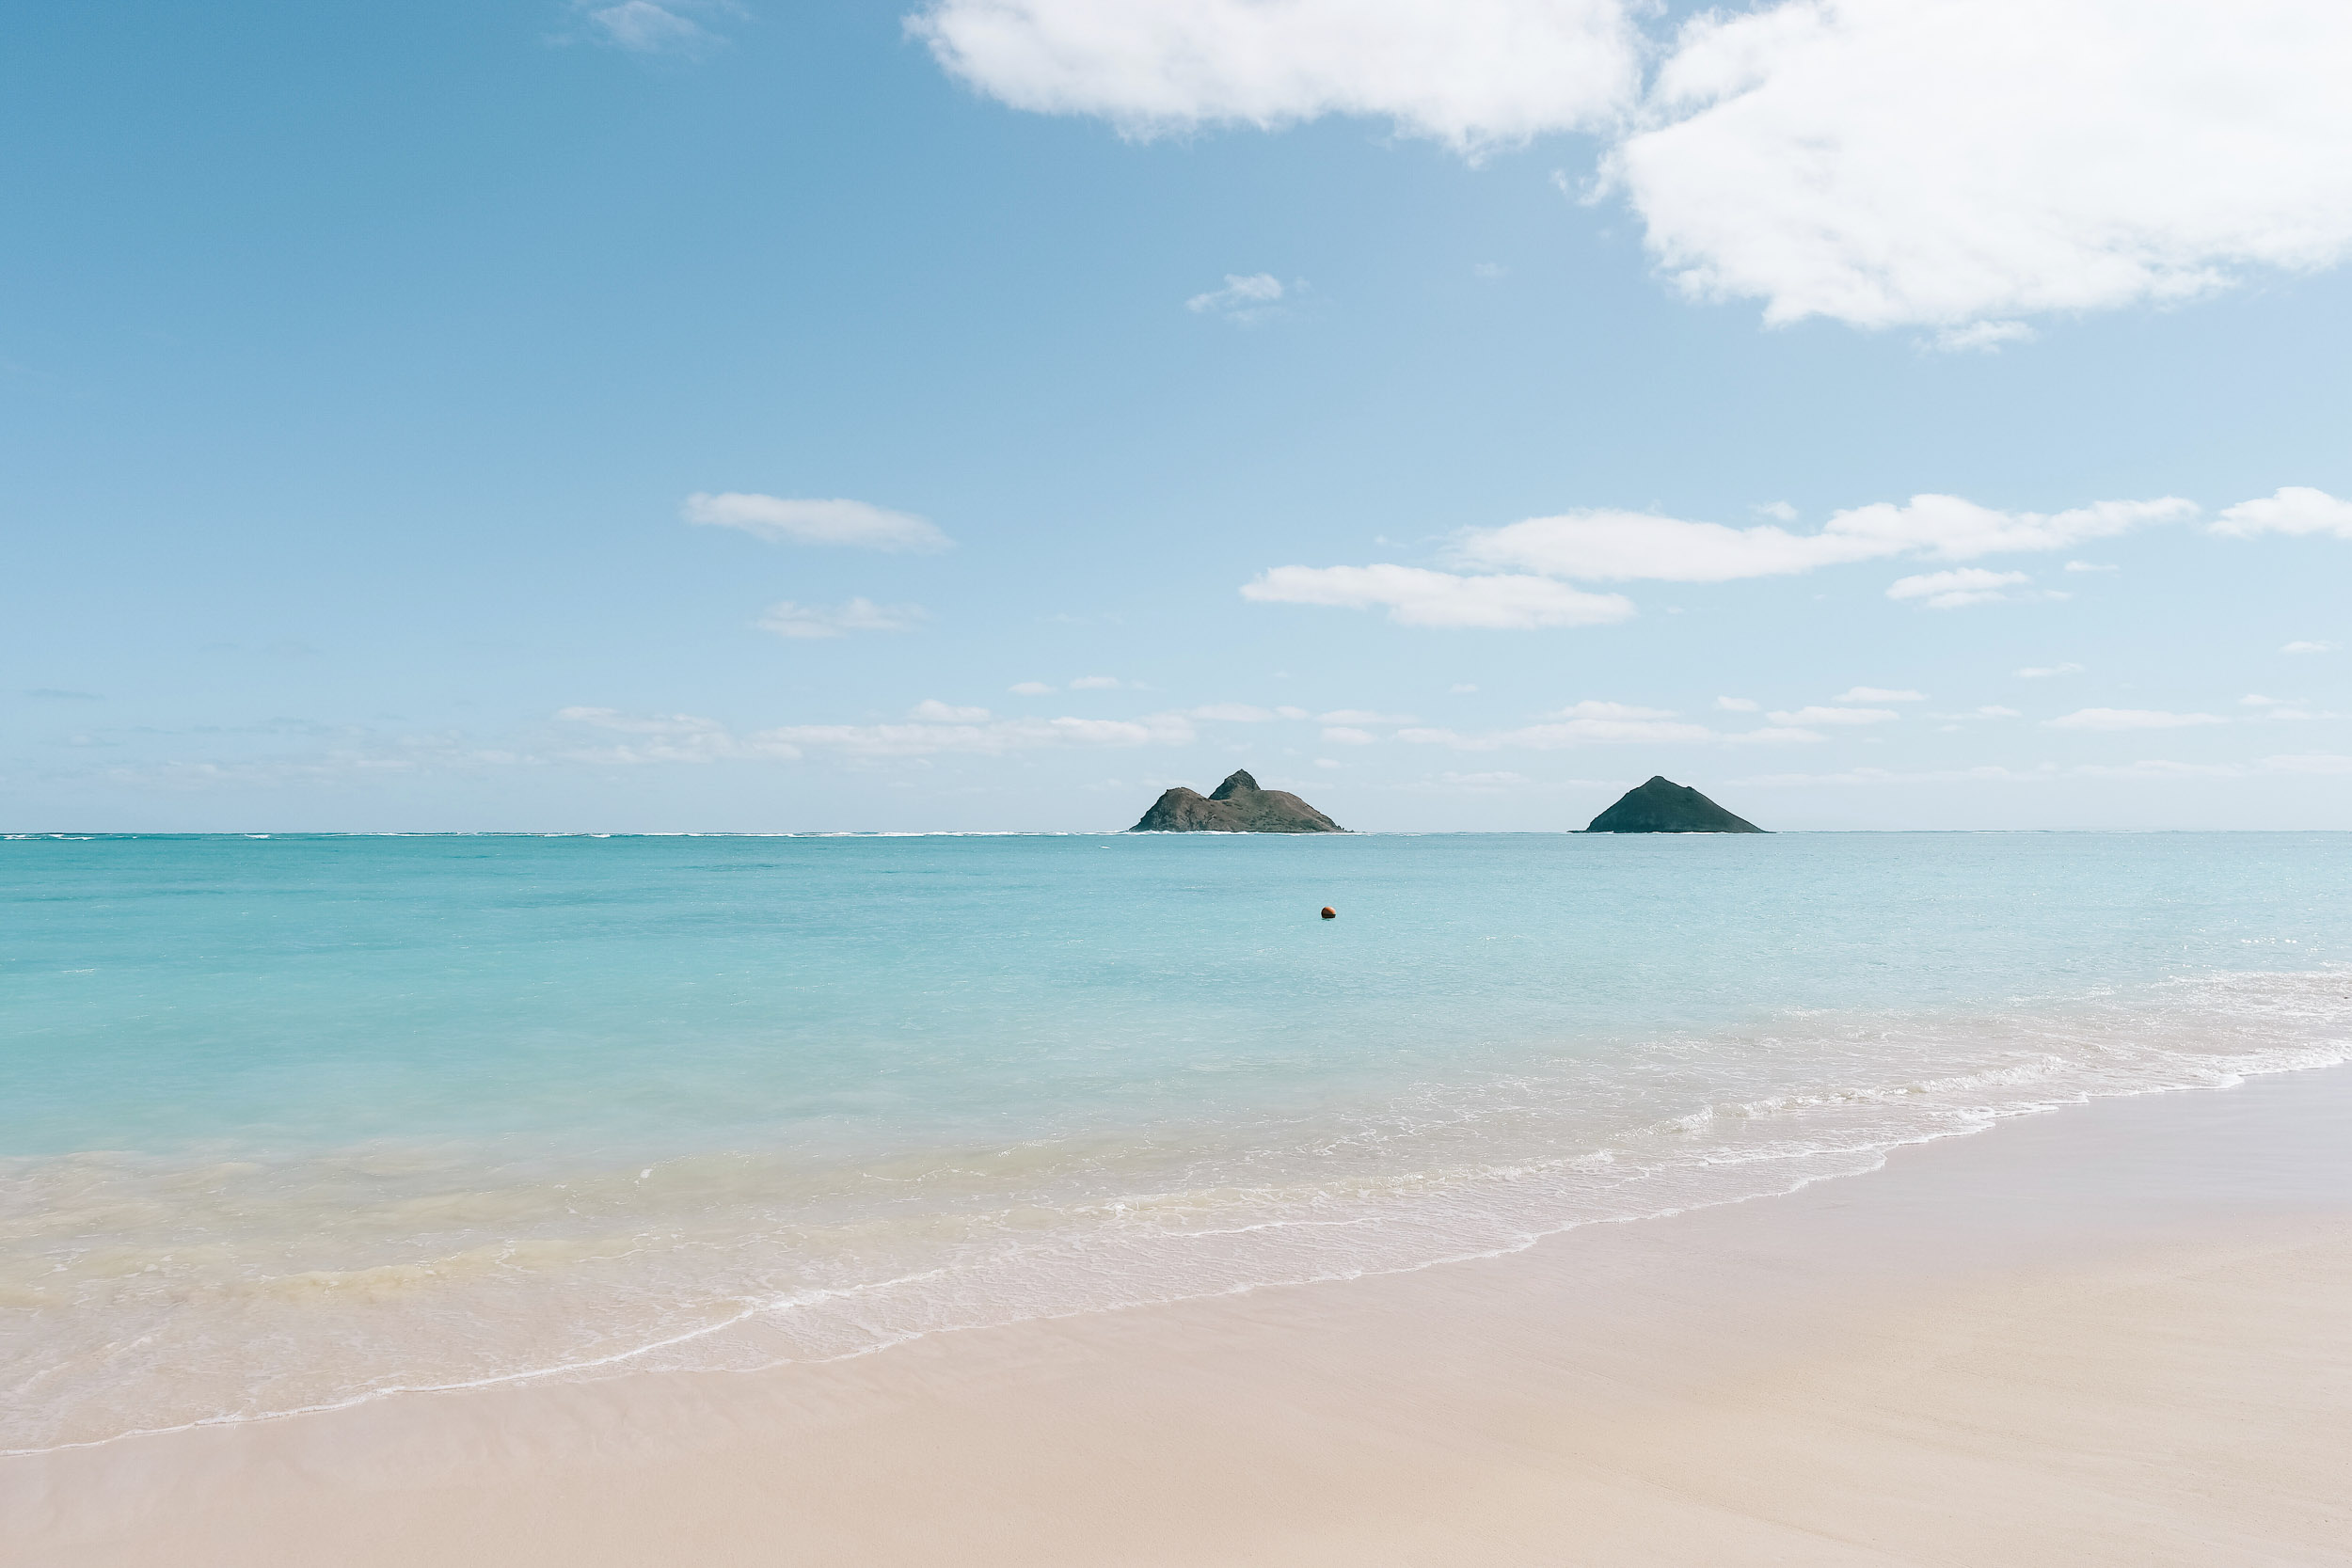 Turquoise water and perfect sand at Lanikai Beach on Oahu